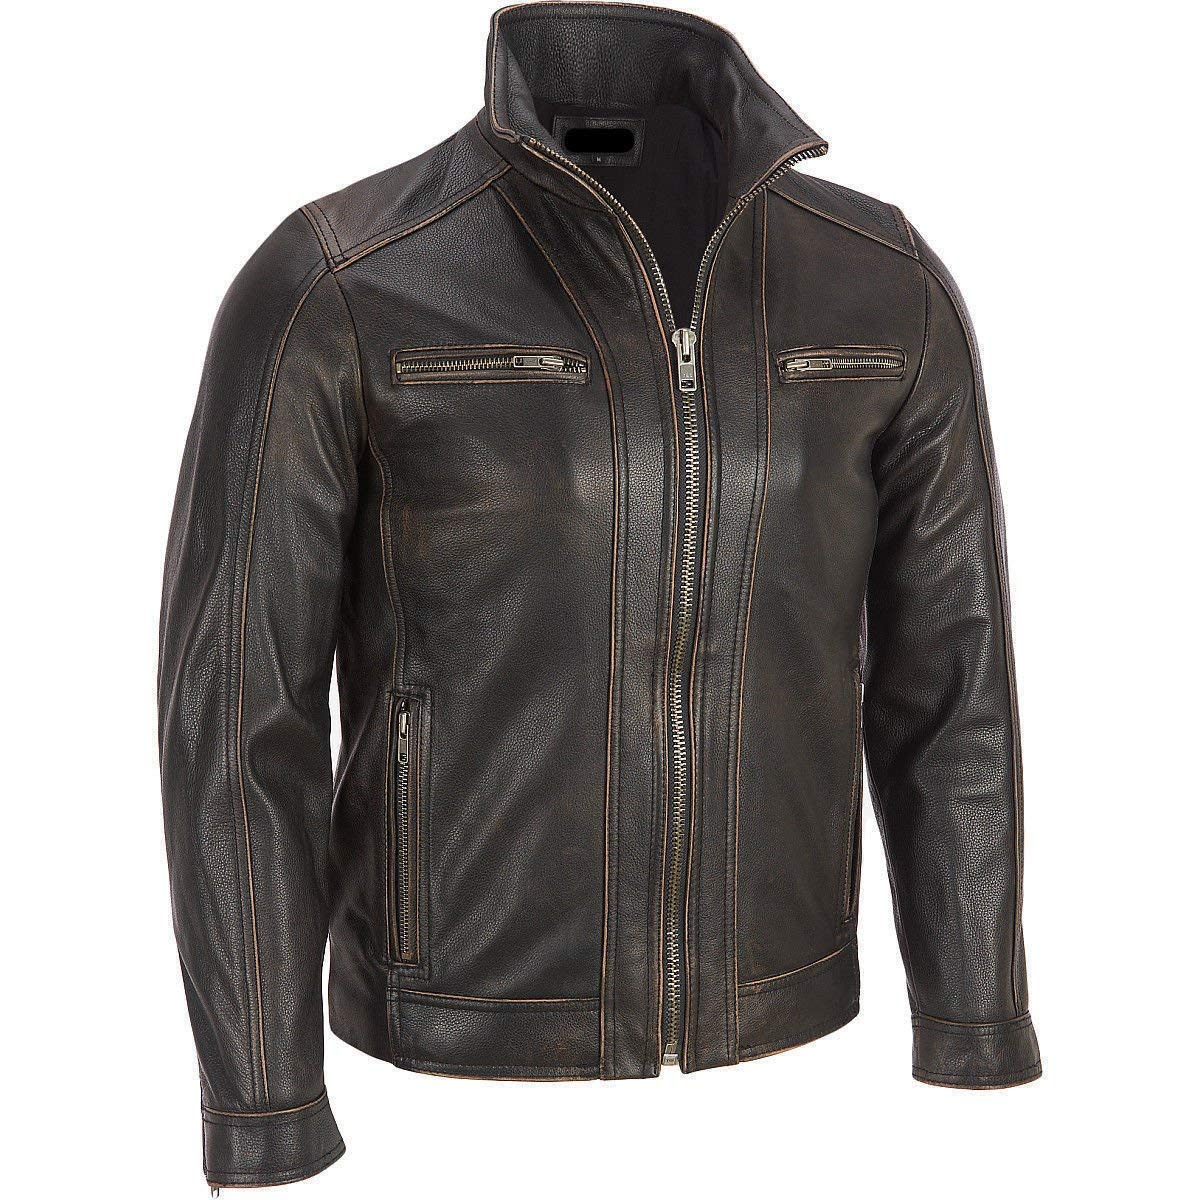 TALLA L. Chaqueta de Superior Leather Garments, con remaches de color negro, cuero vacuno auténtico, costura visible, para hombre